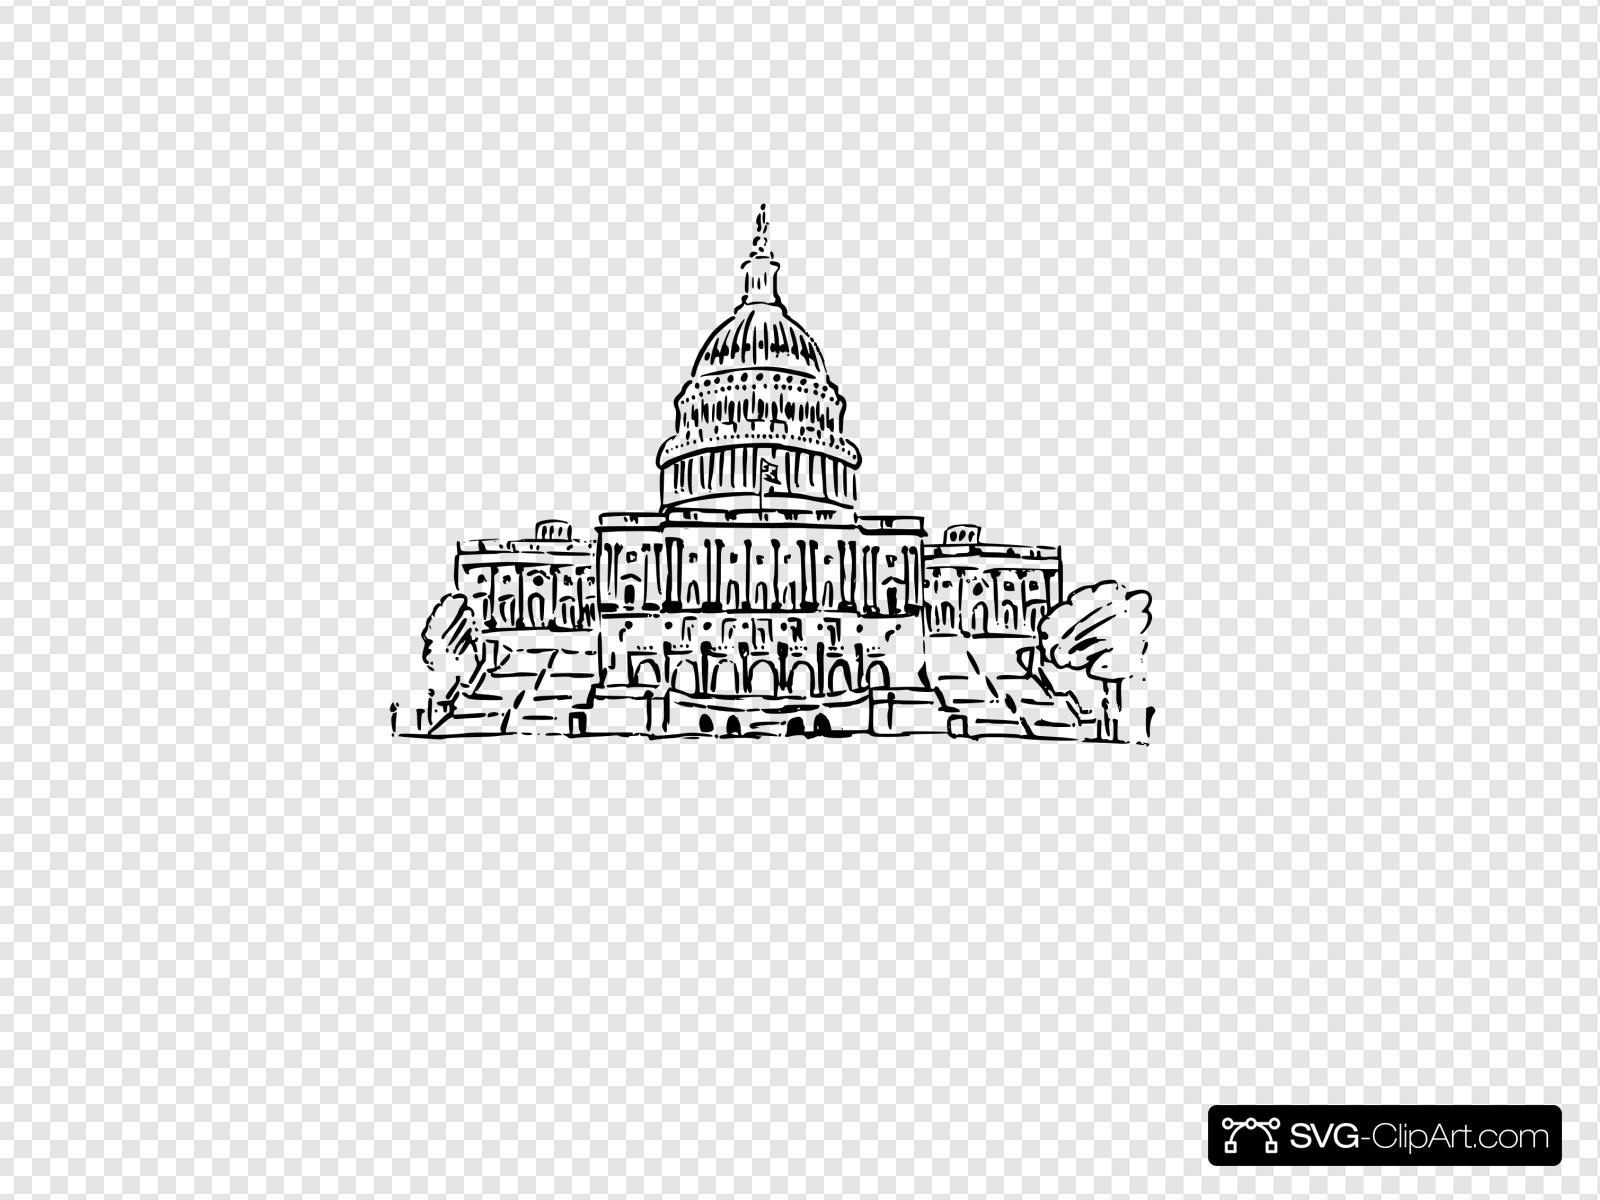 Capital Clip art, Icon and SVG.